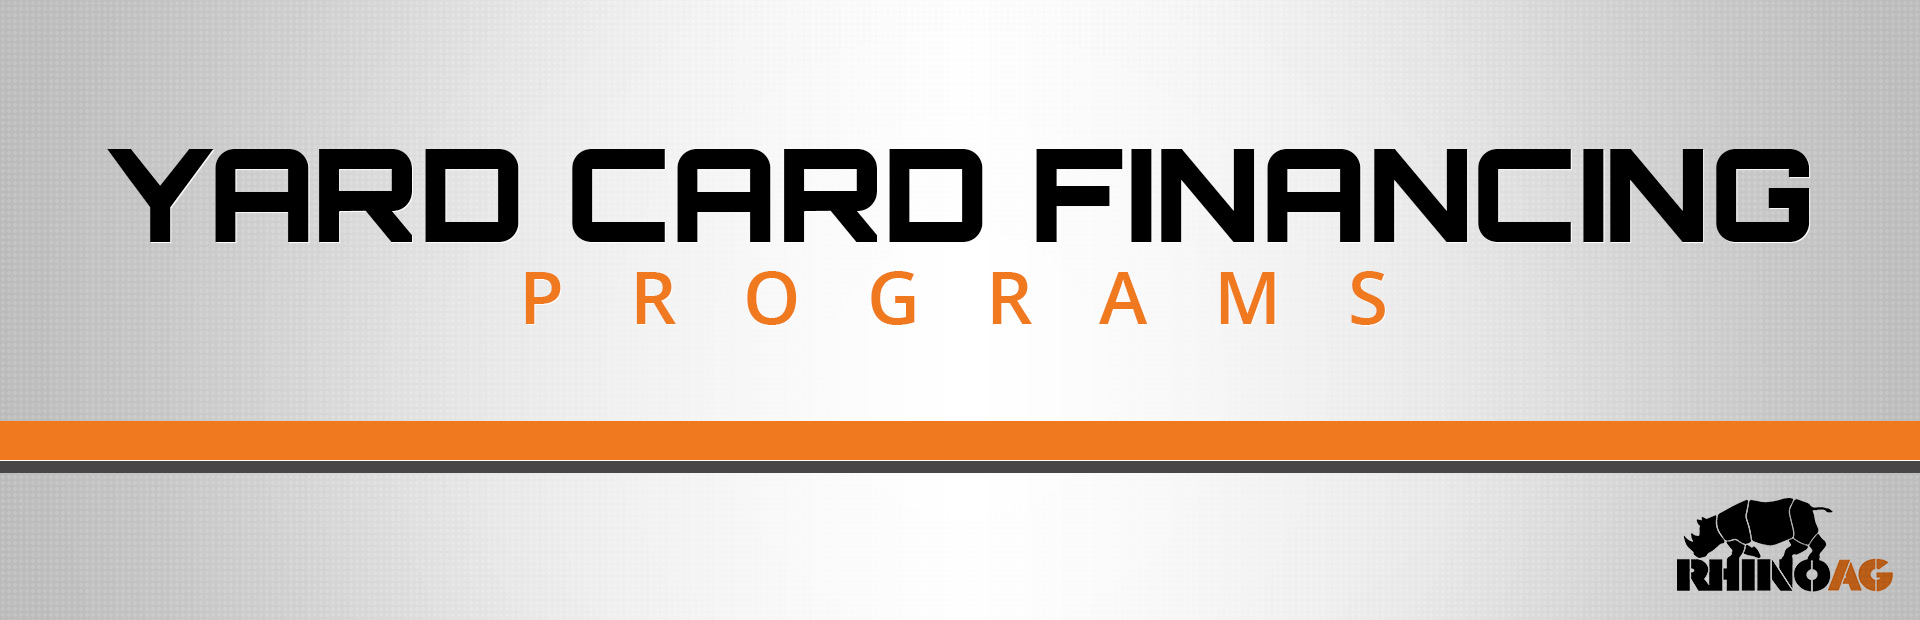 RhinoAg: Rhino AG - Yard Card Financing Programs